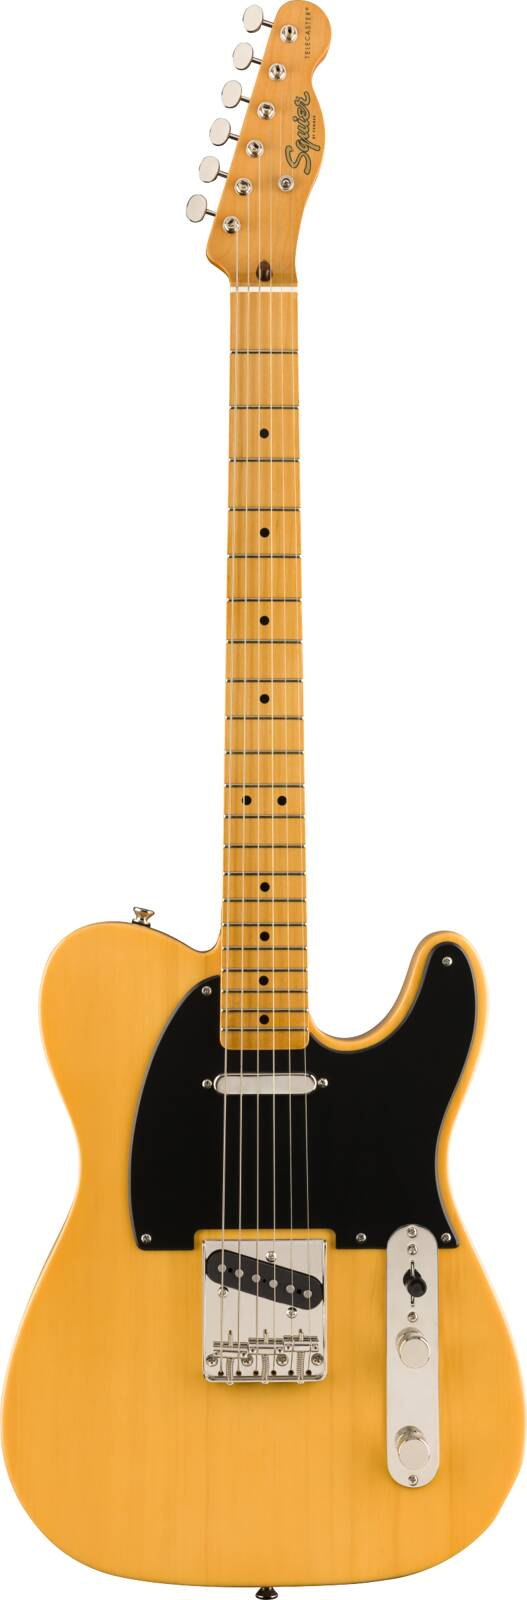 Squier Classic Vibe '50s Telecaster Maple Fingerboard Butterscotch Blonde : photo 1